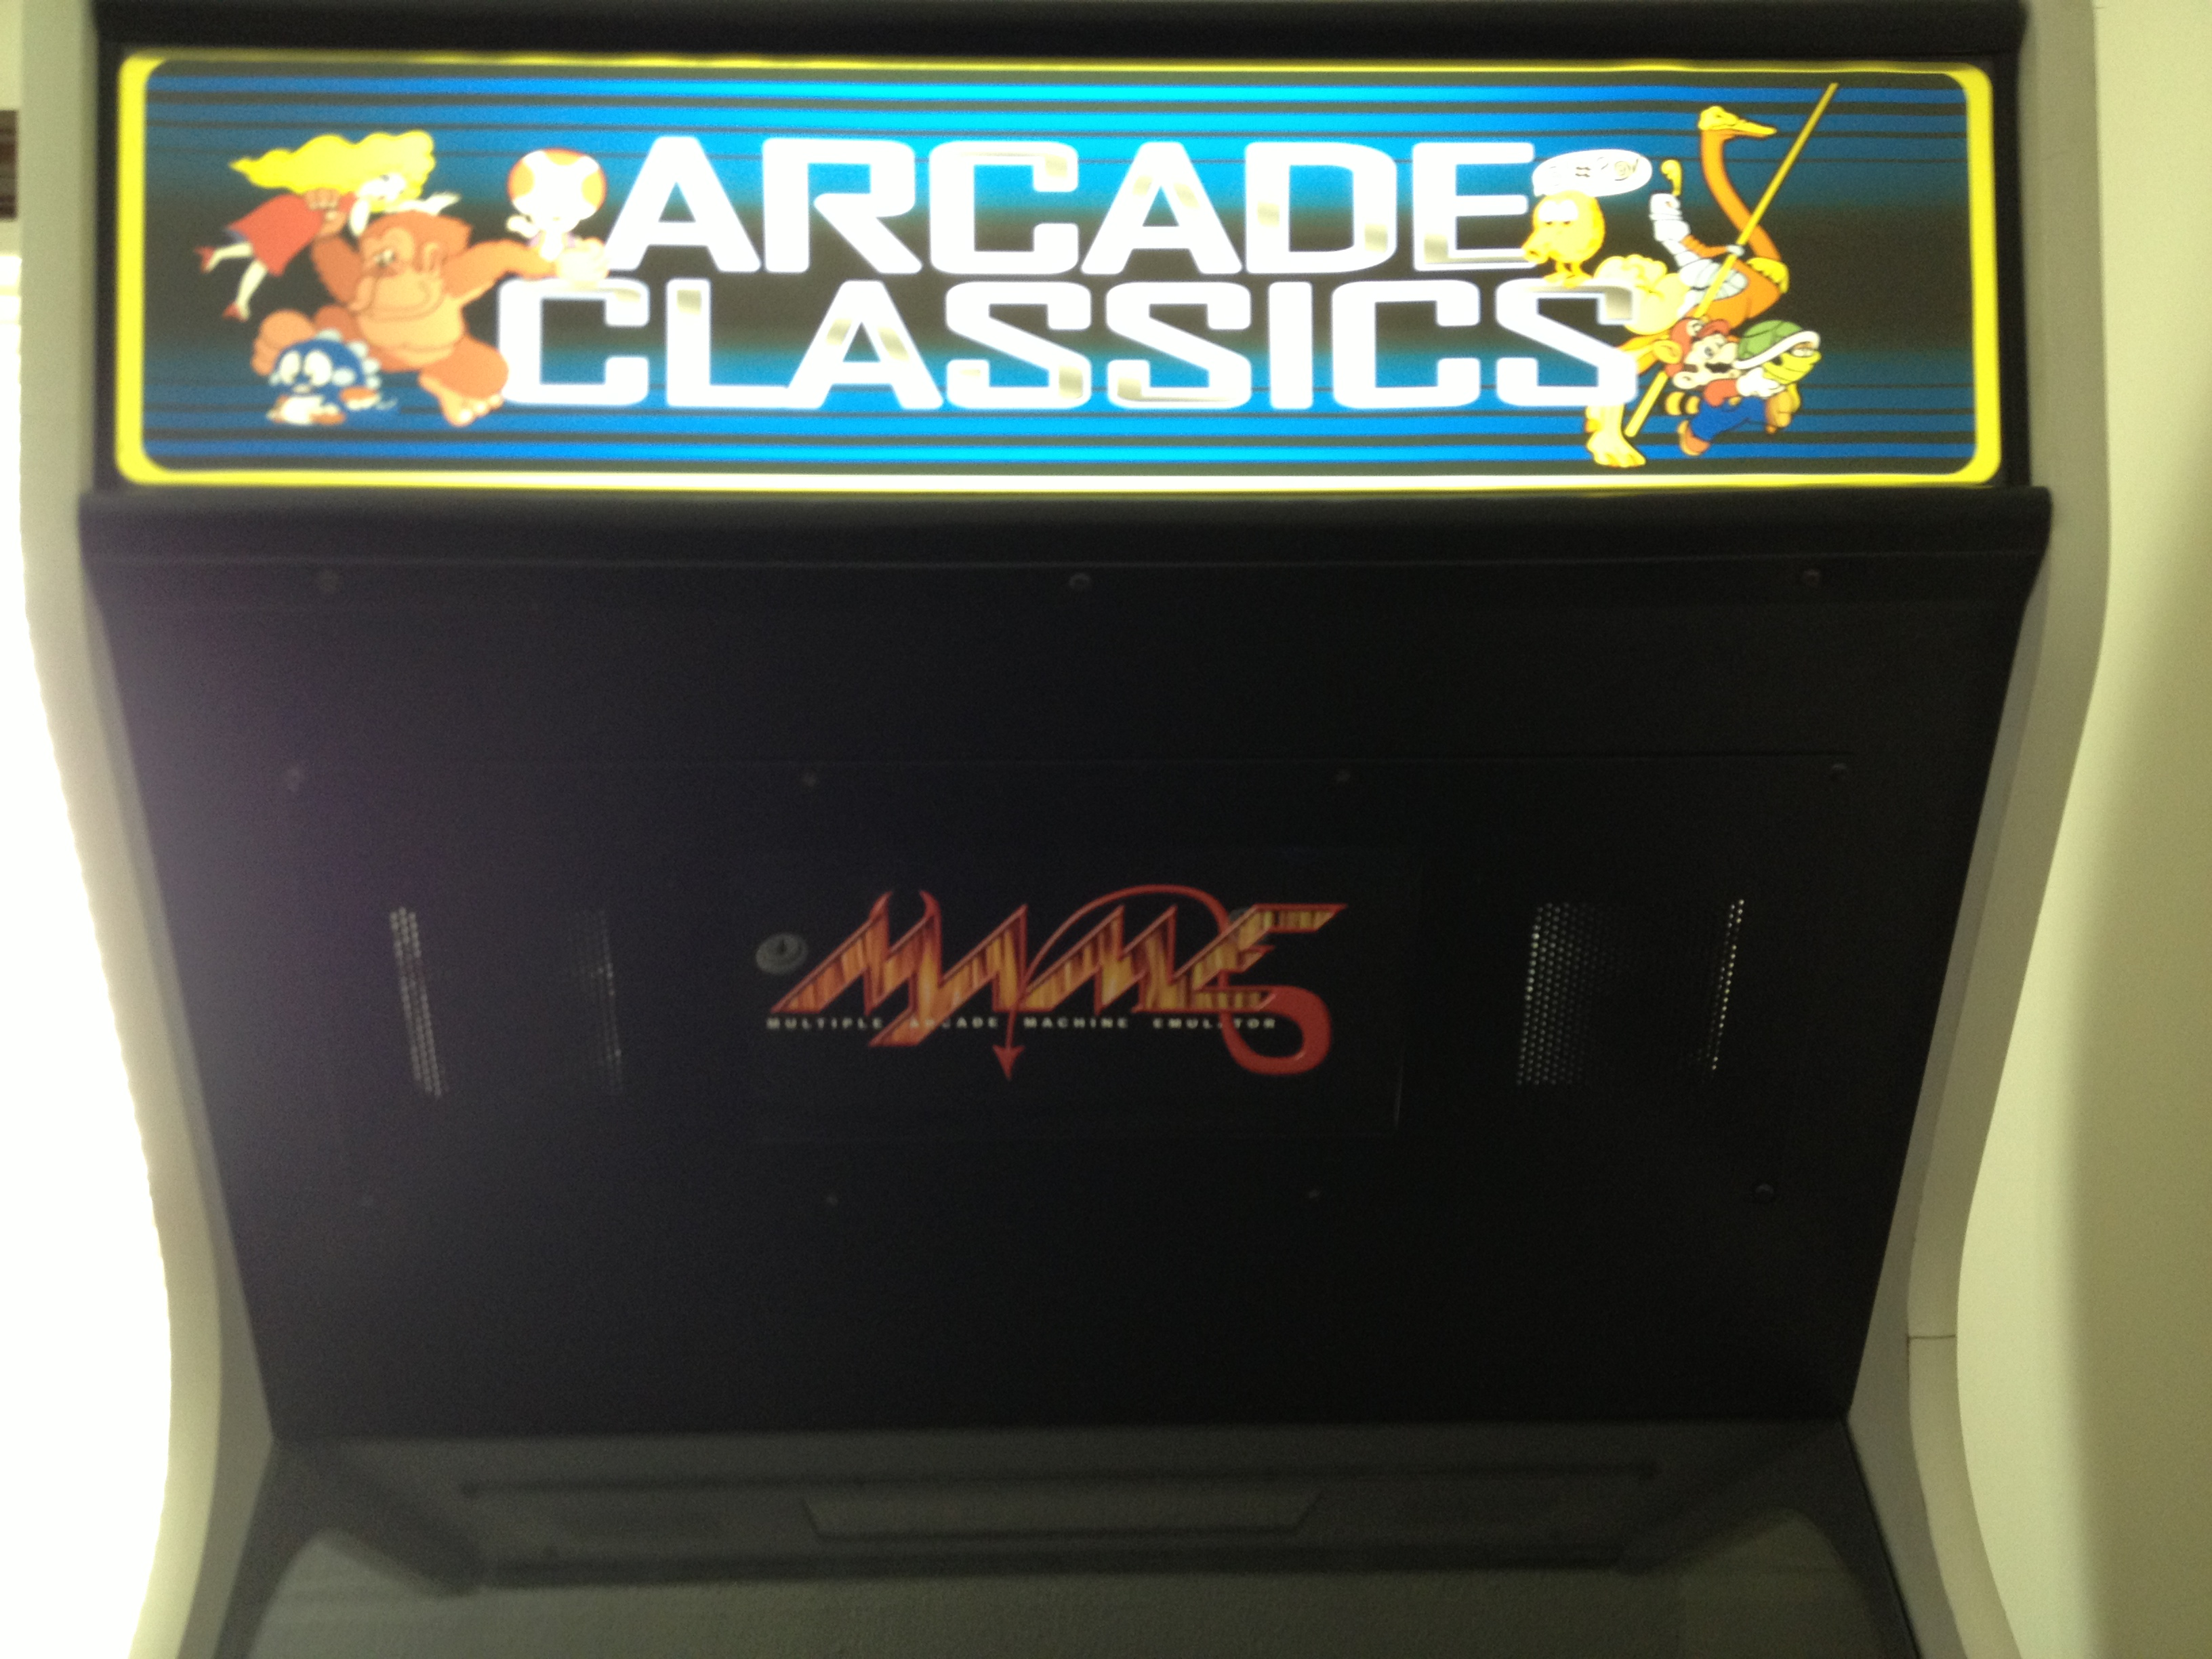 Arcade Machine | cpprograms